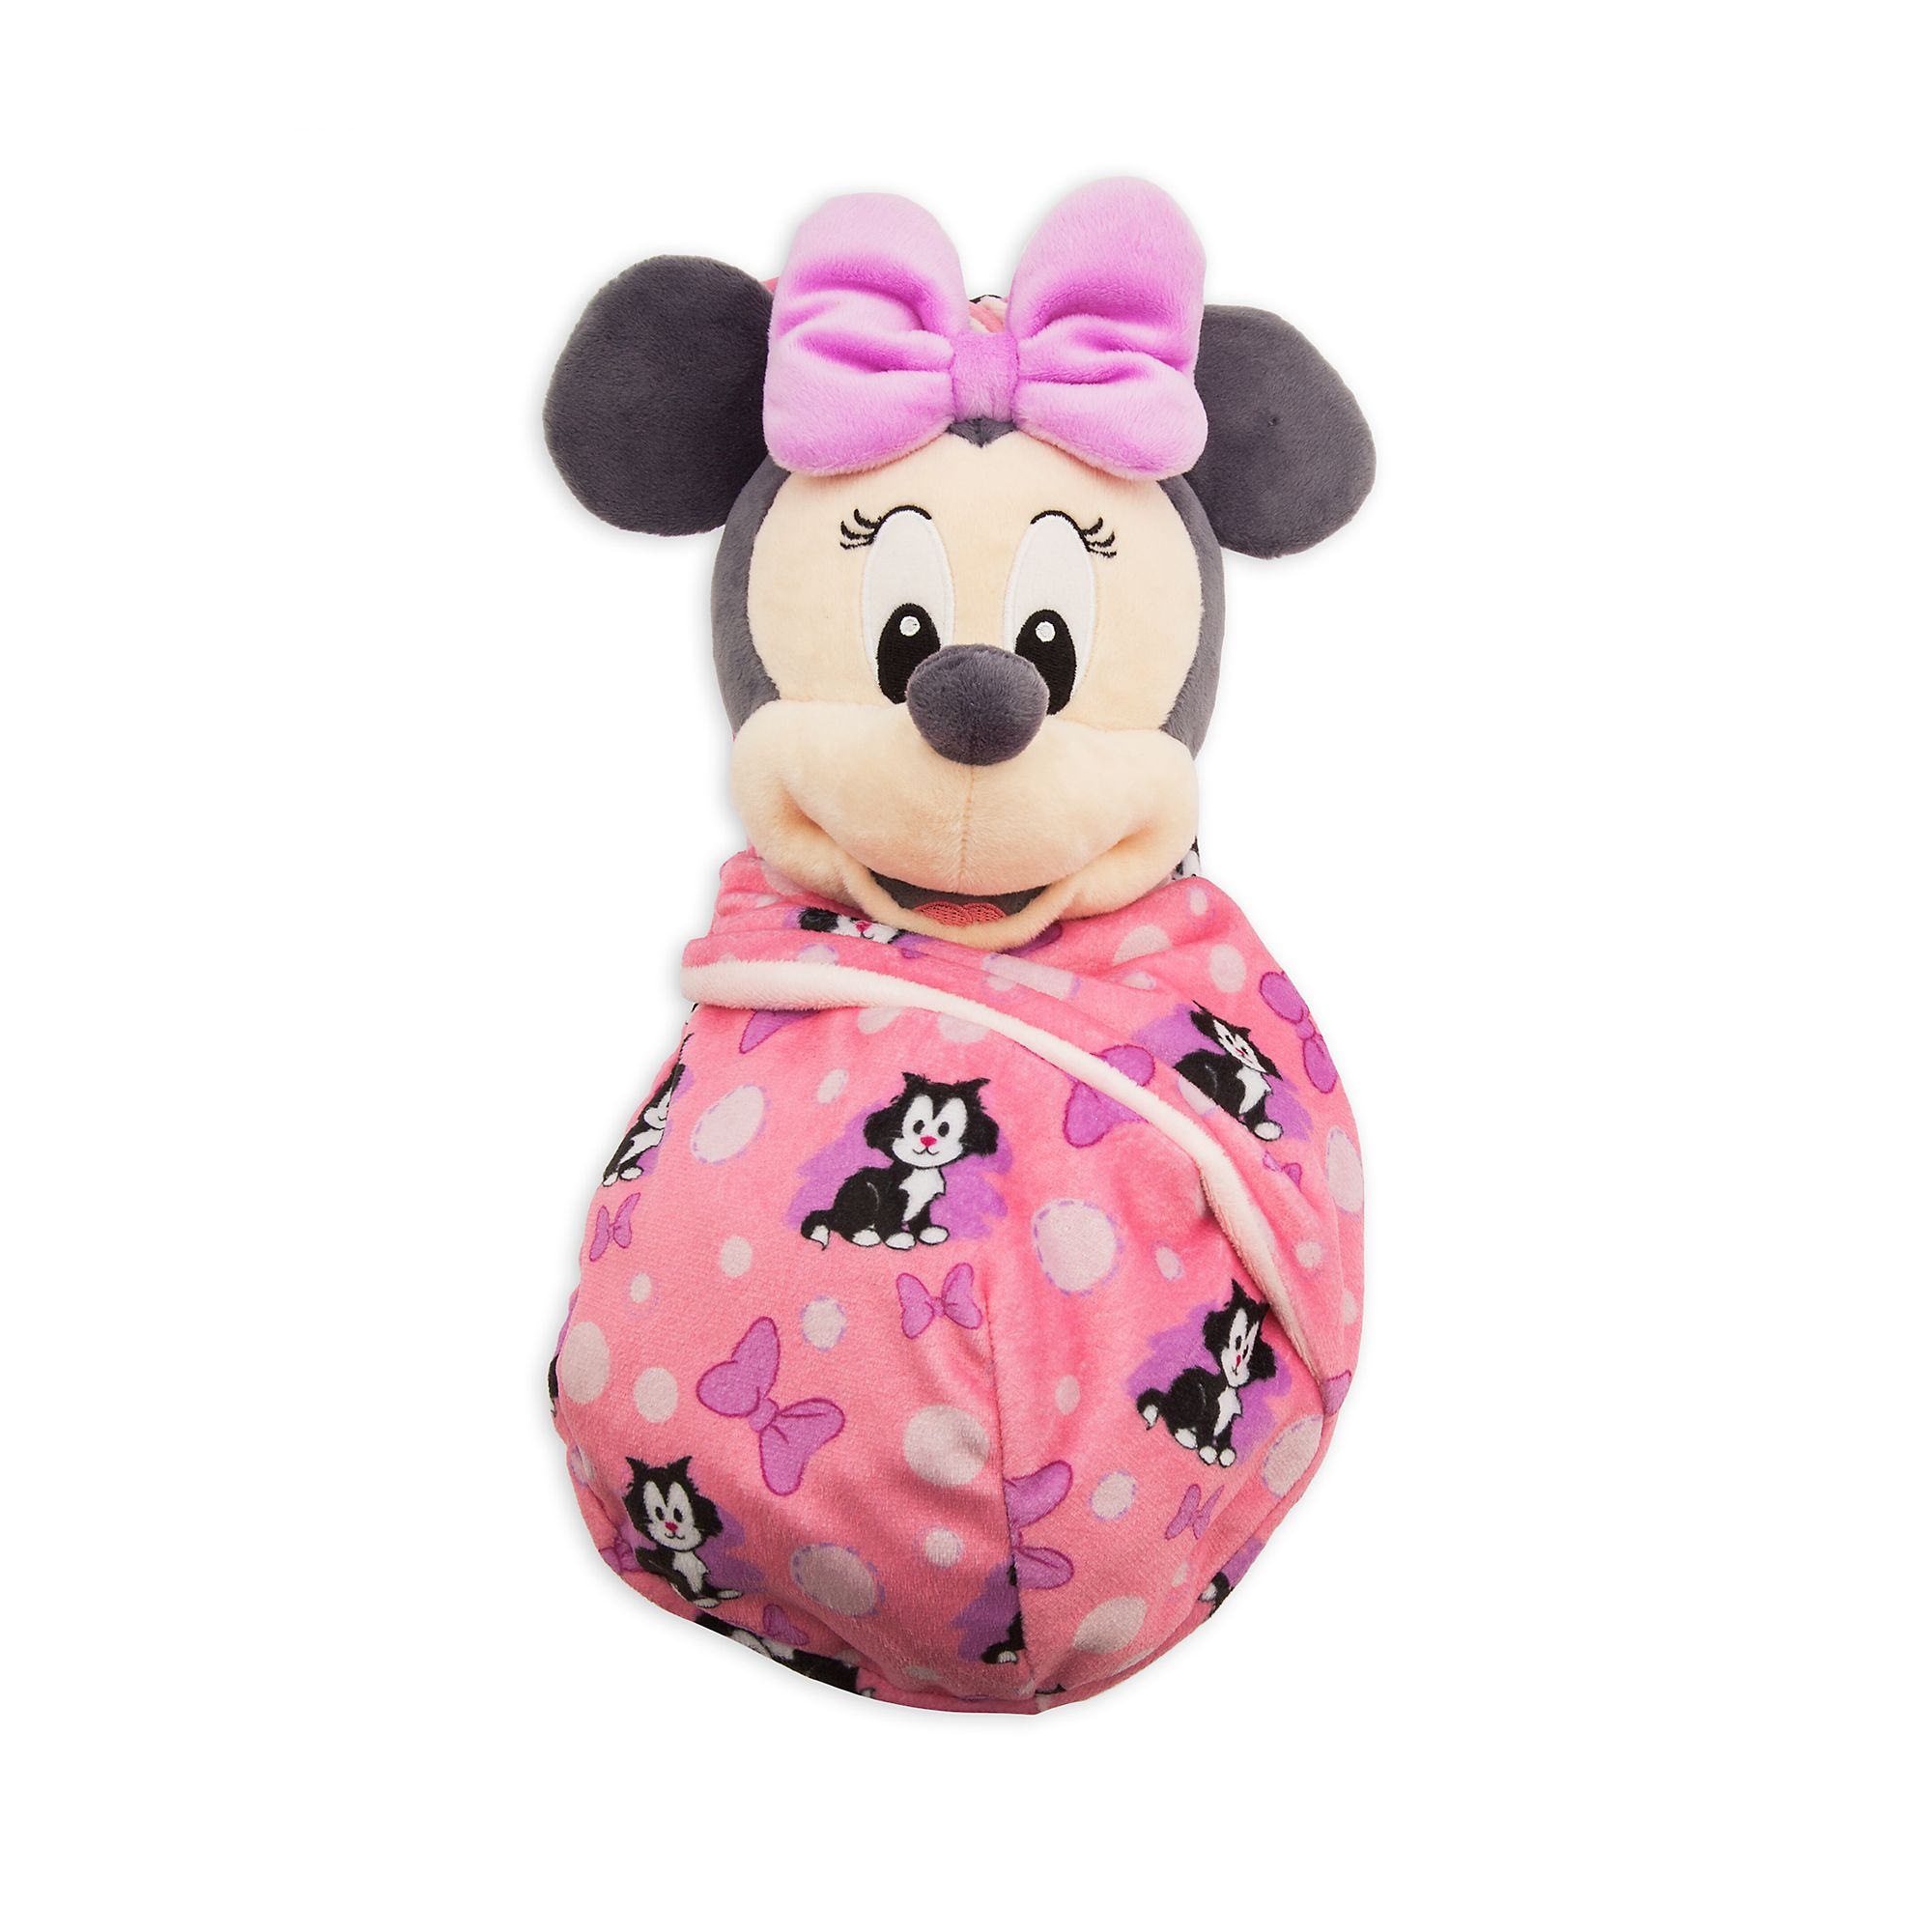 Disney Minnie Mouse v zavinovačce plyš